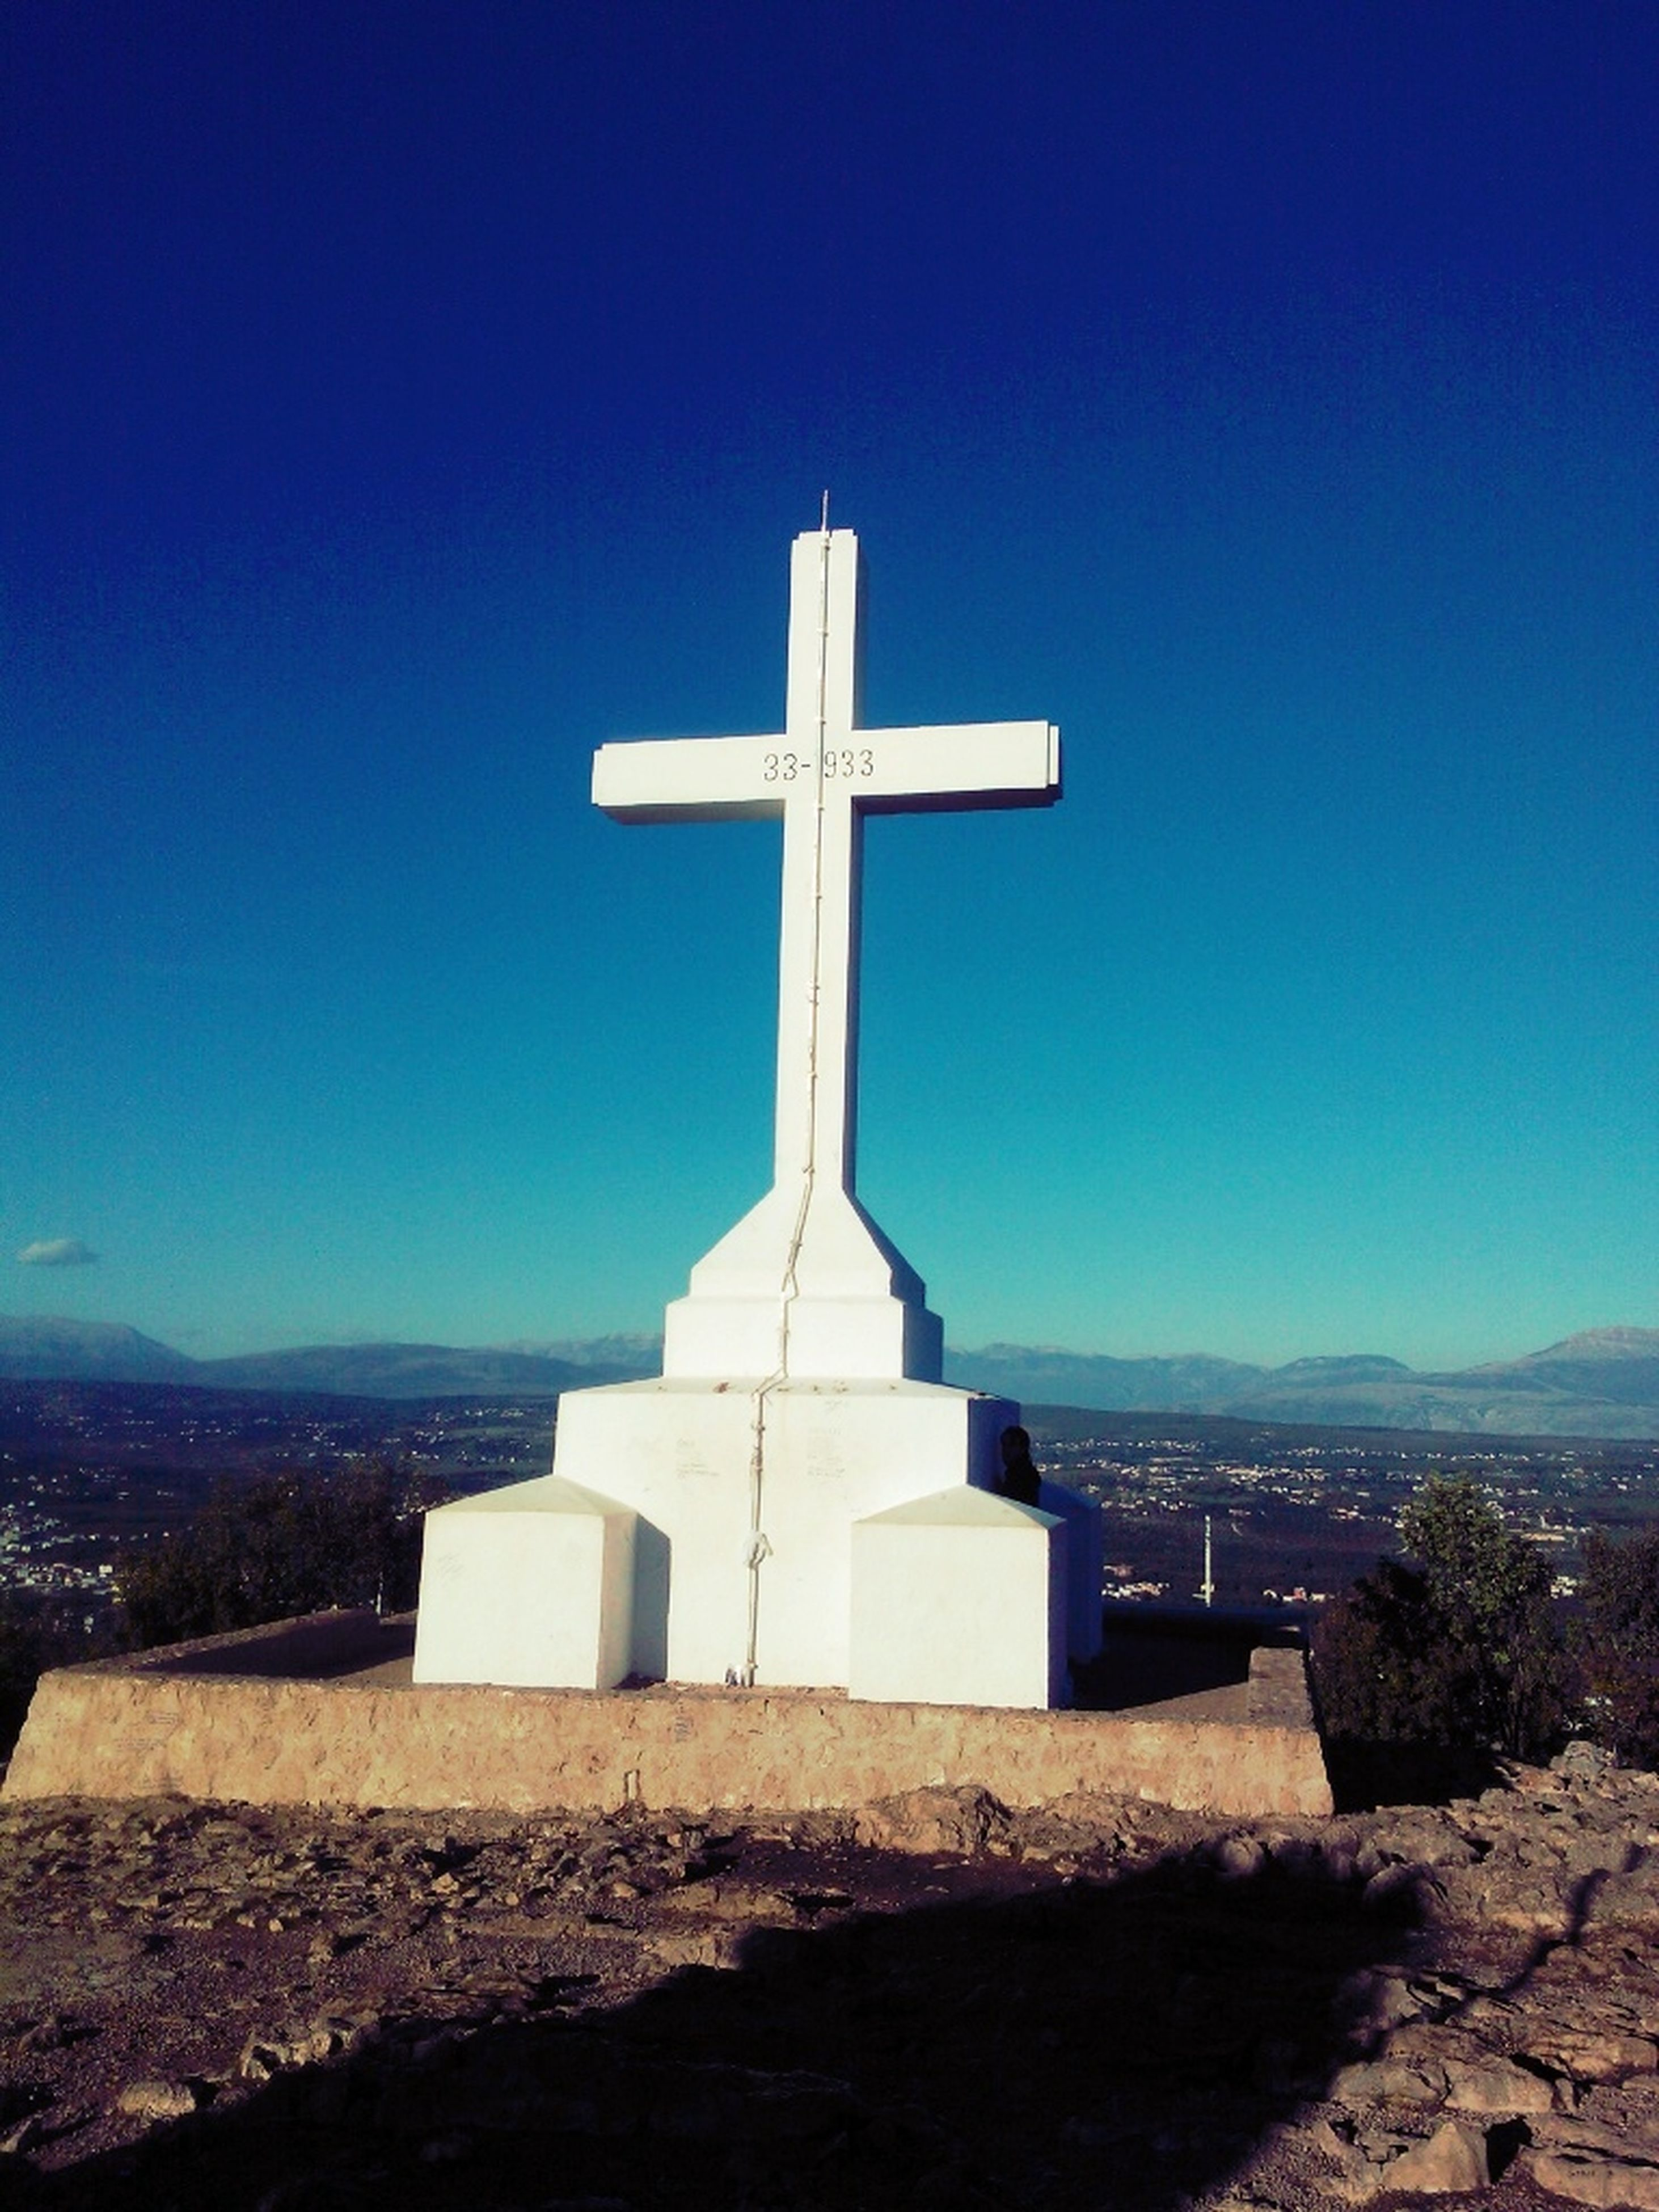 religion, cross, spirituality, clear sky, blue, place of worship, built structure, copy space, church, architecture, building exterior, tower, low angle view, no people, outdoors, sky, day, guidance